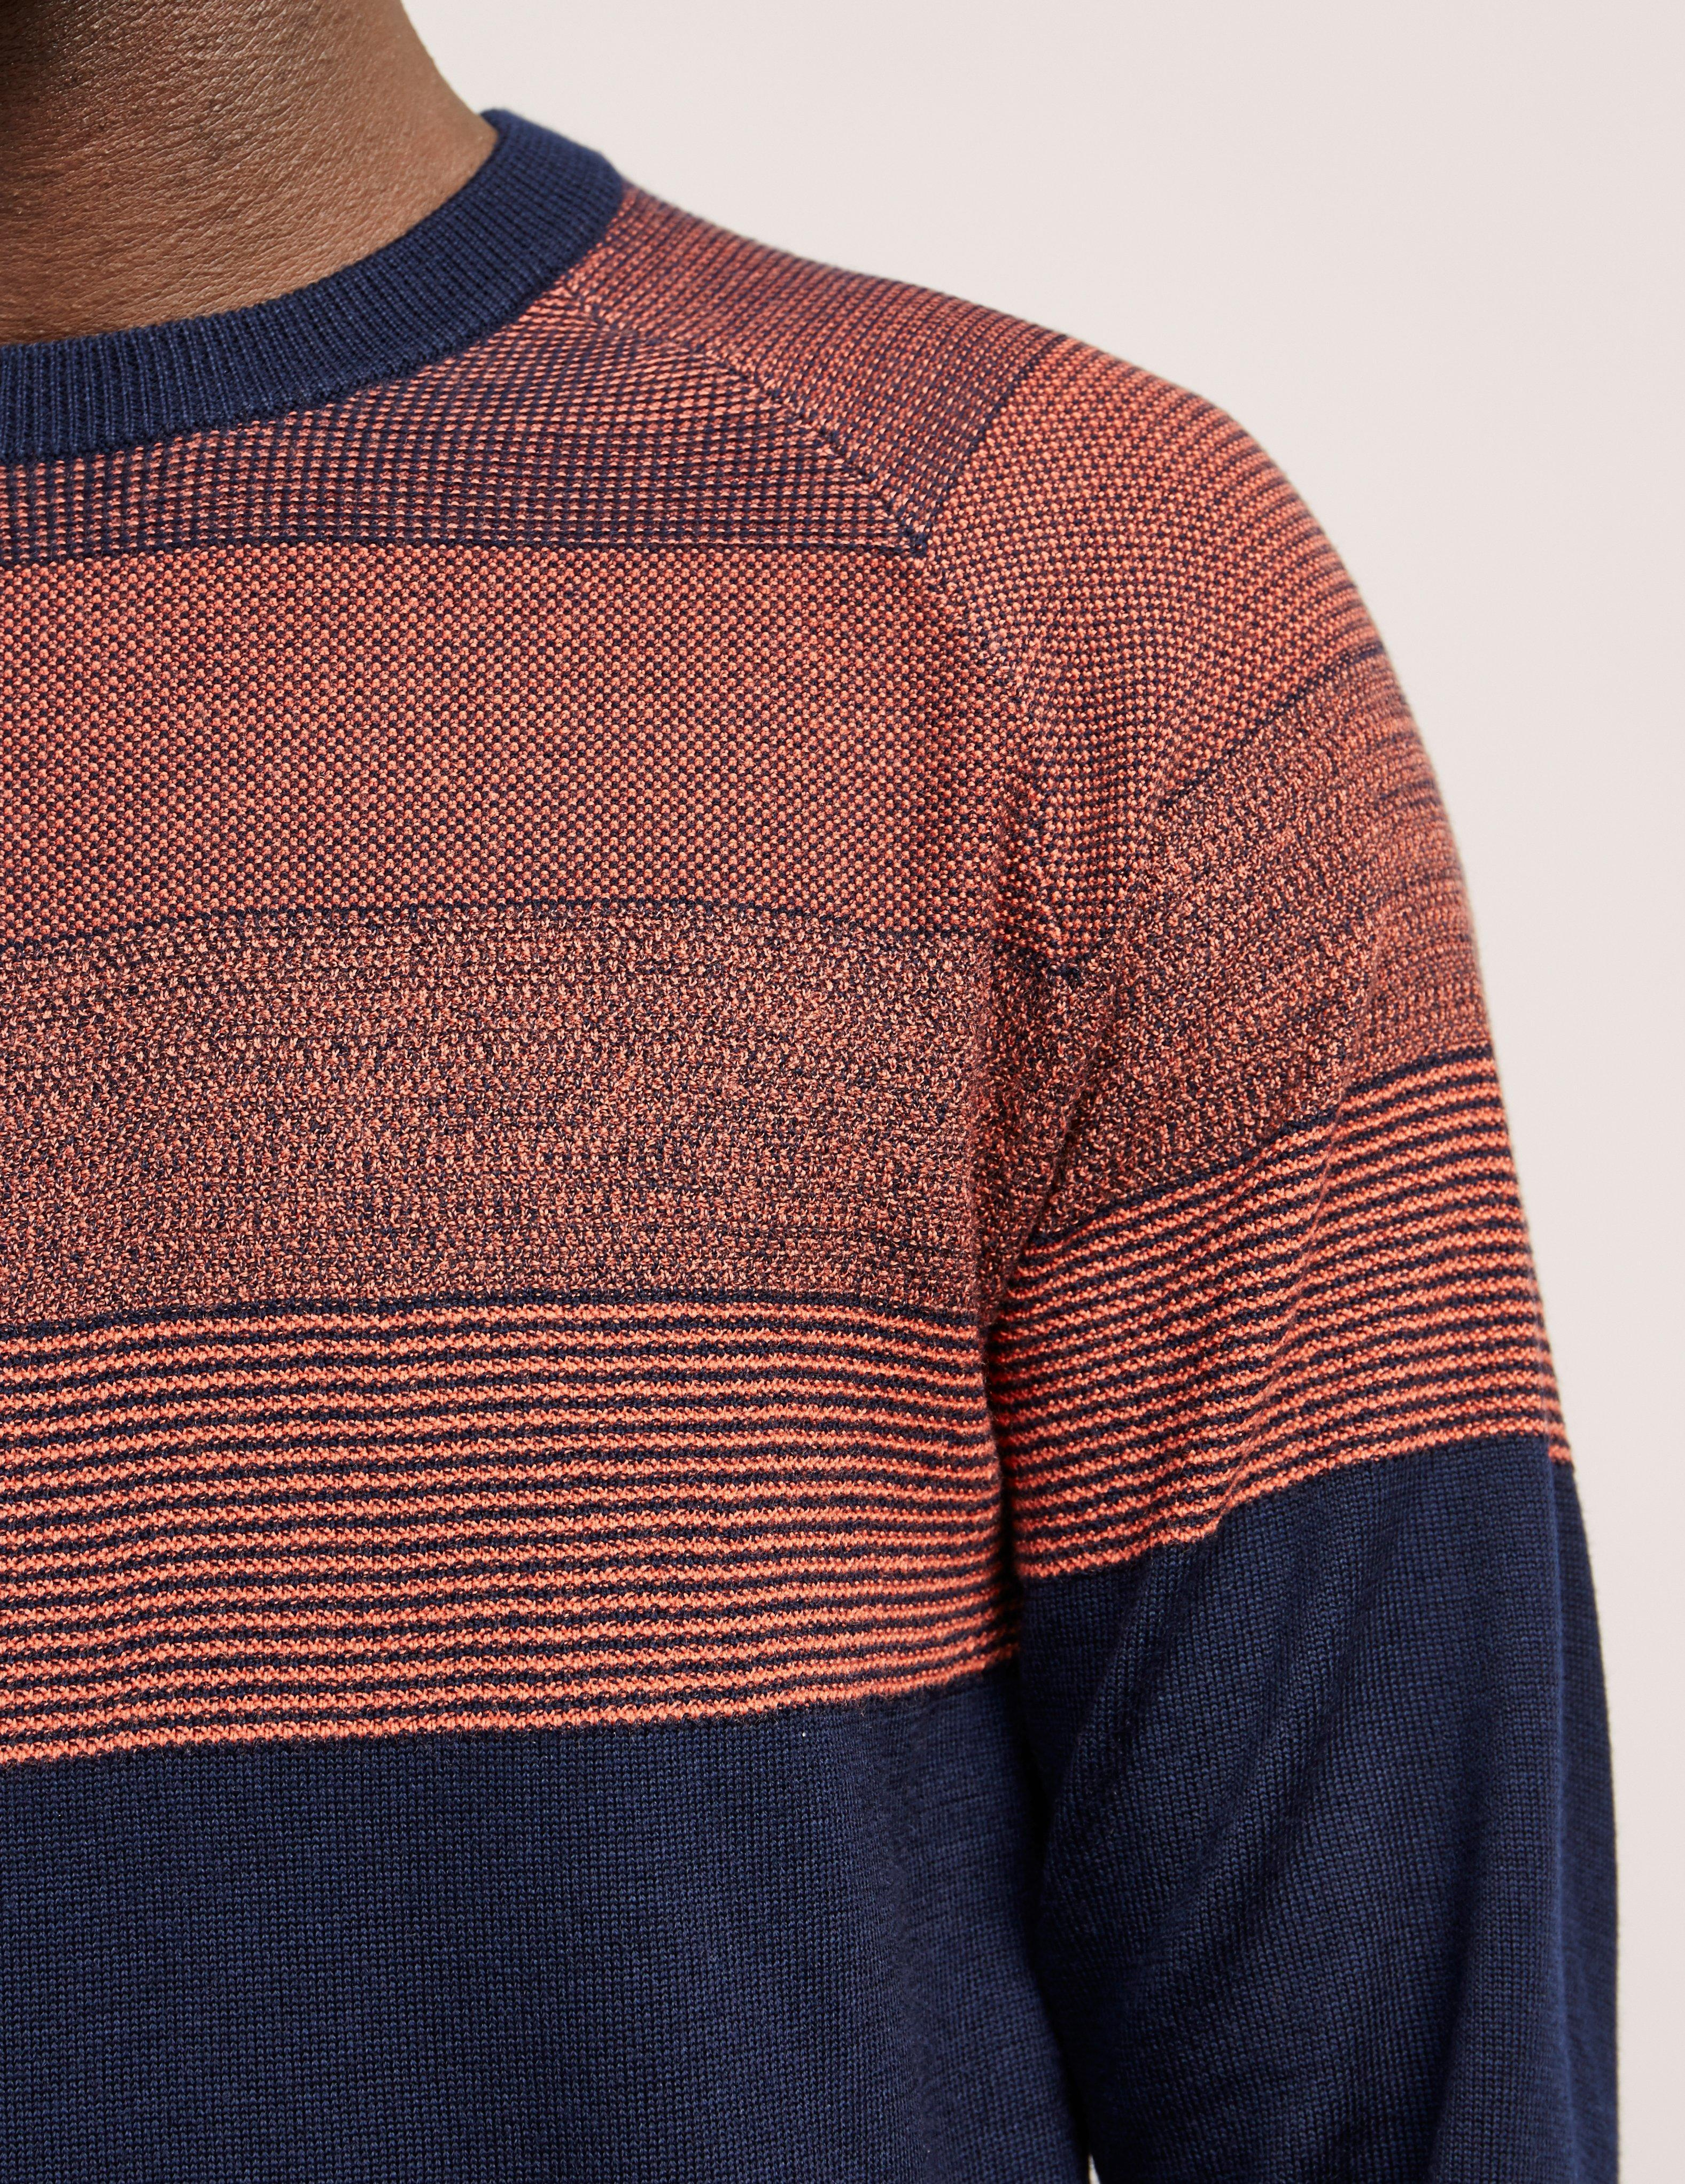 daa694fdfb8a7c PS by Paul Smith Contrast Knitted Jumper - Online Exclusive Navy ...